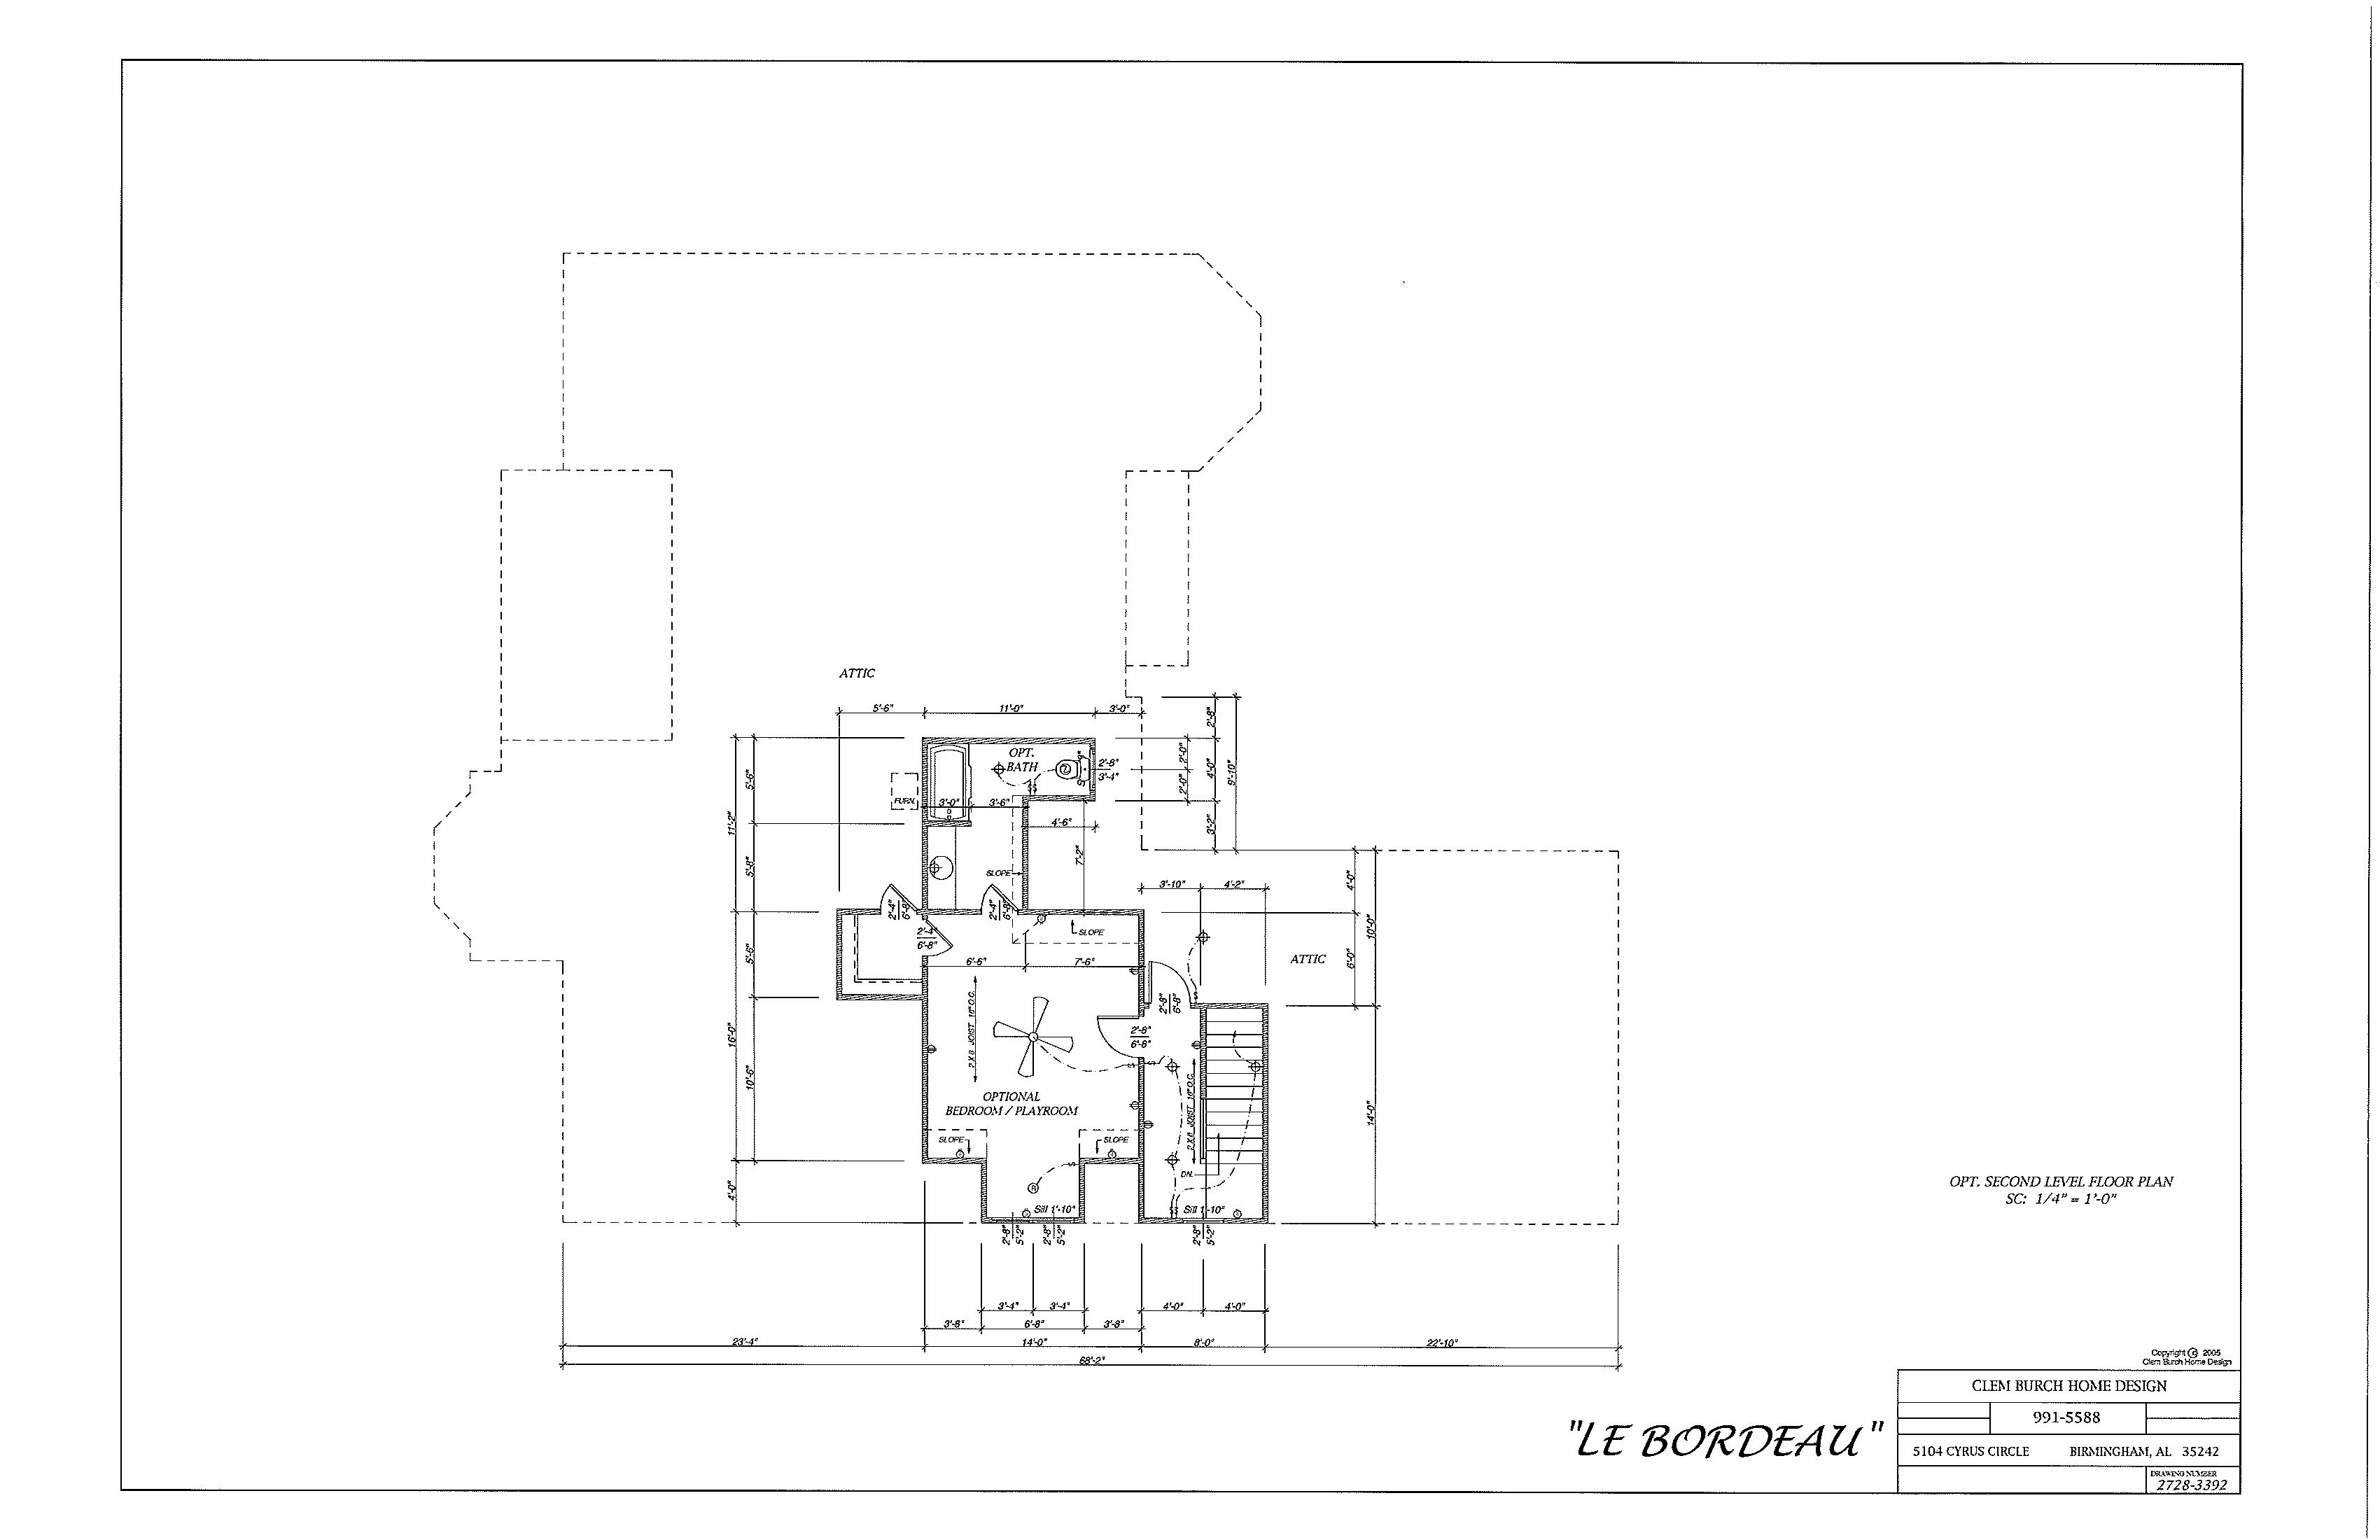 Le_Bordeau Floor Plan 2nd